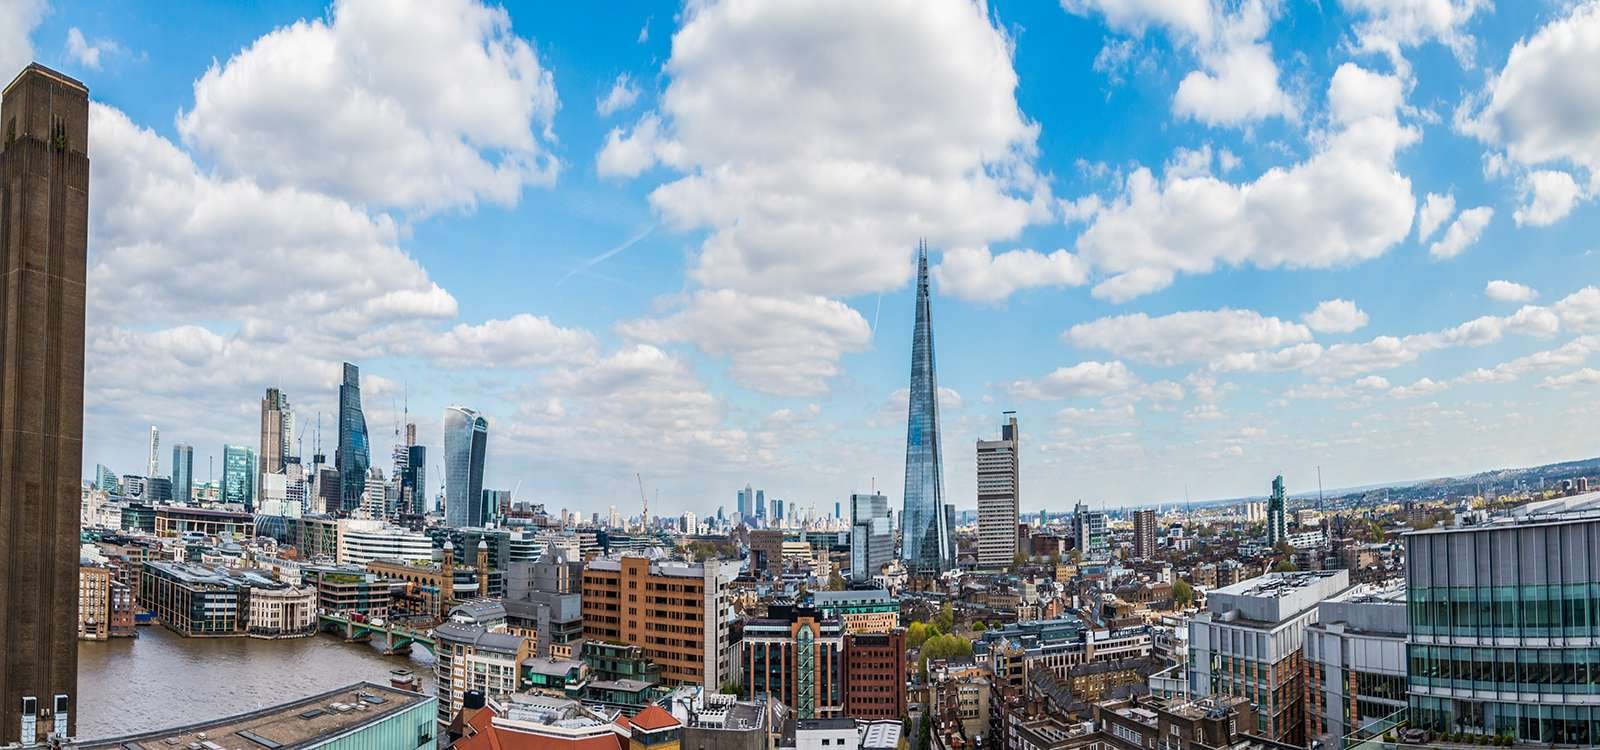 a picture of the london skyline from an office building